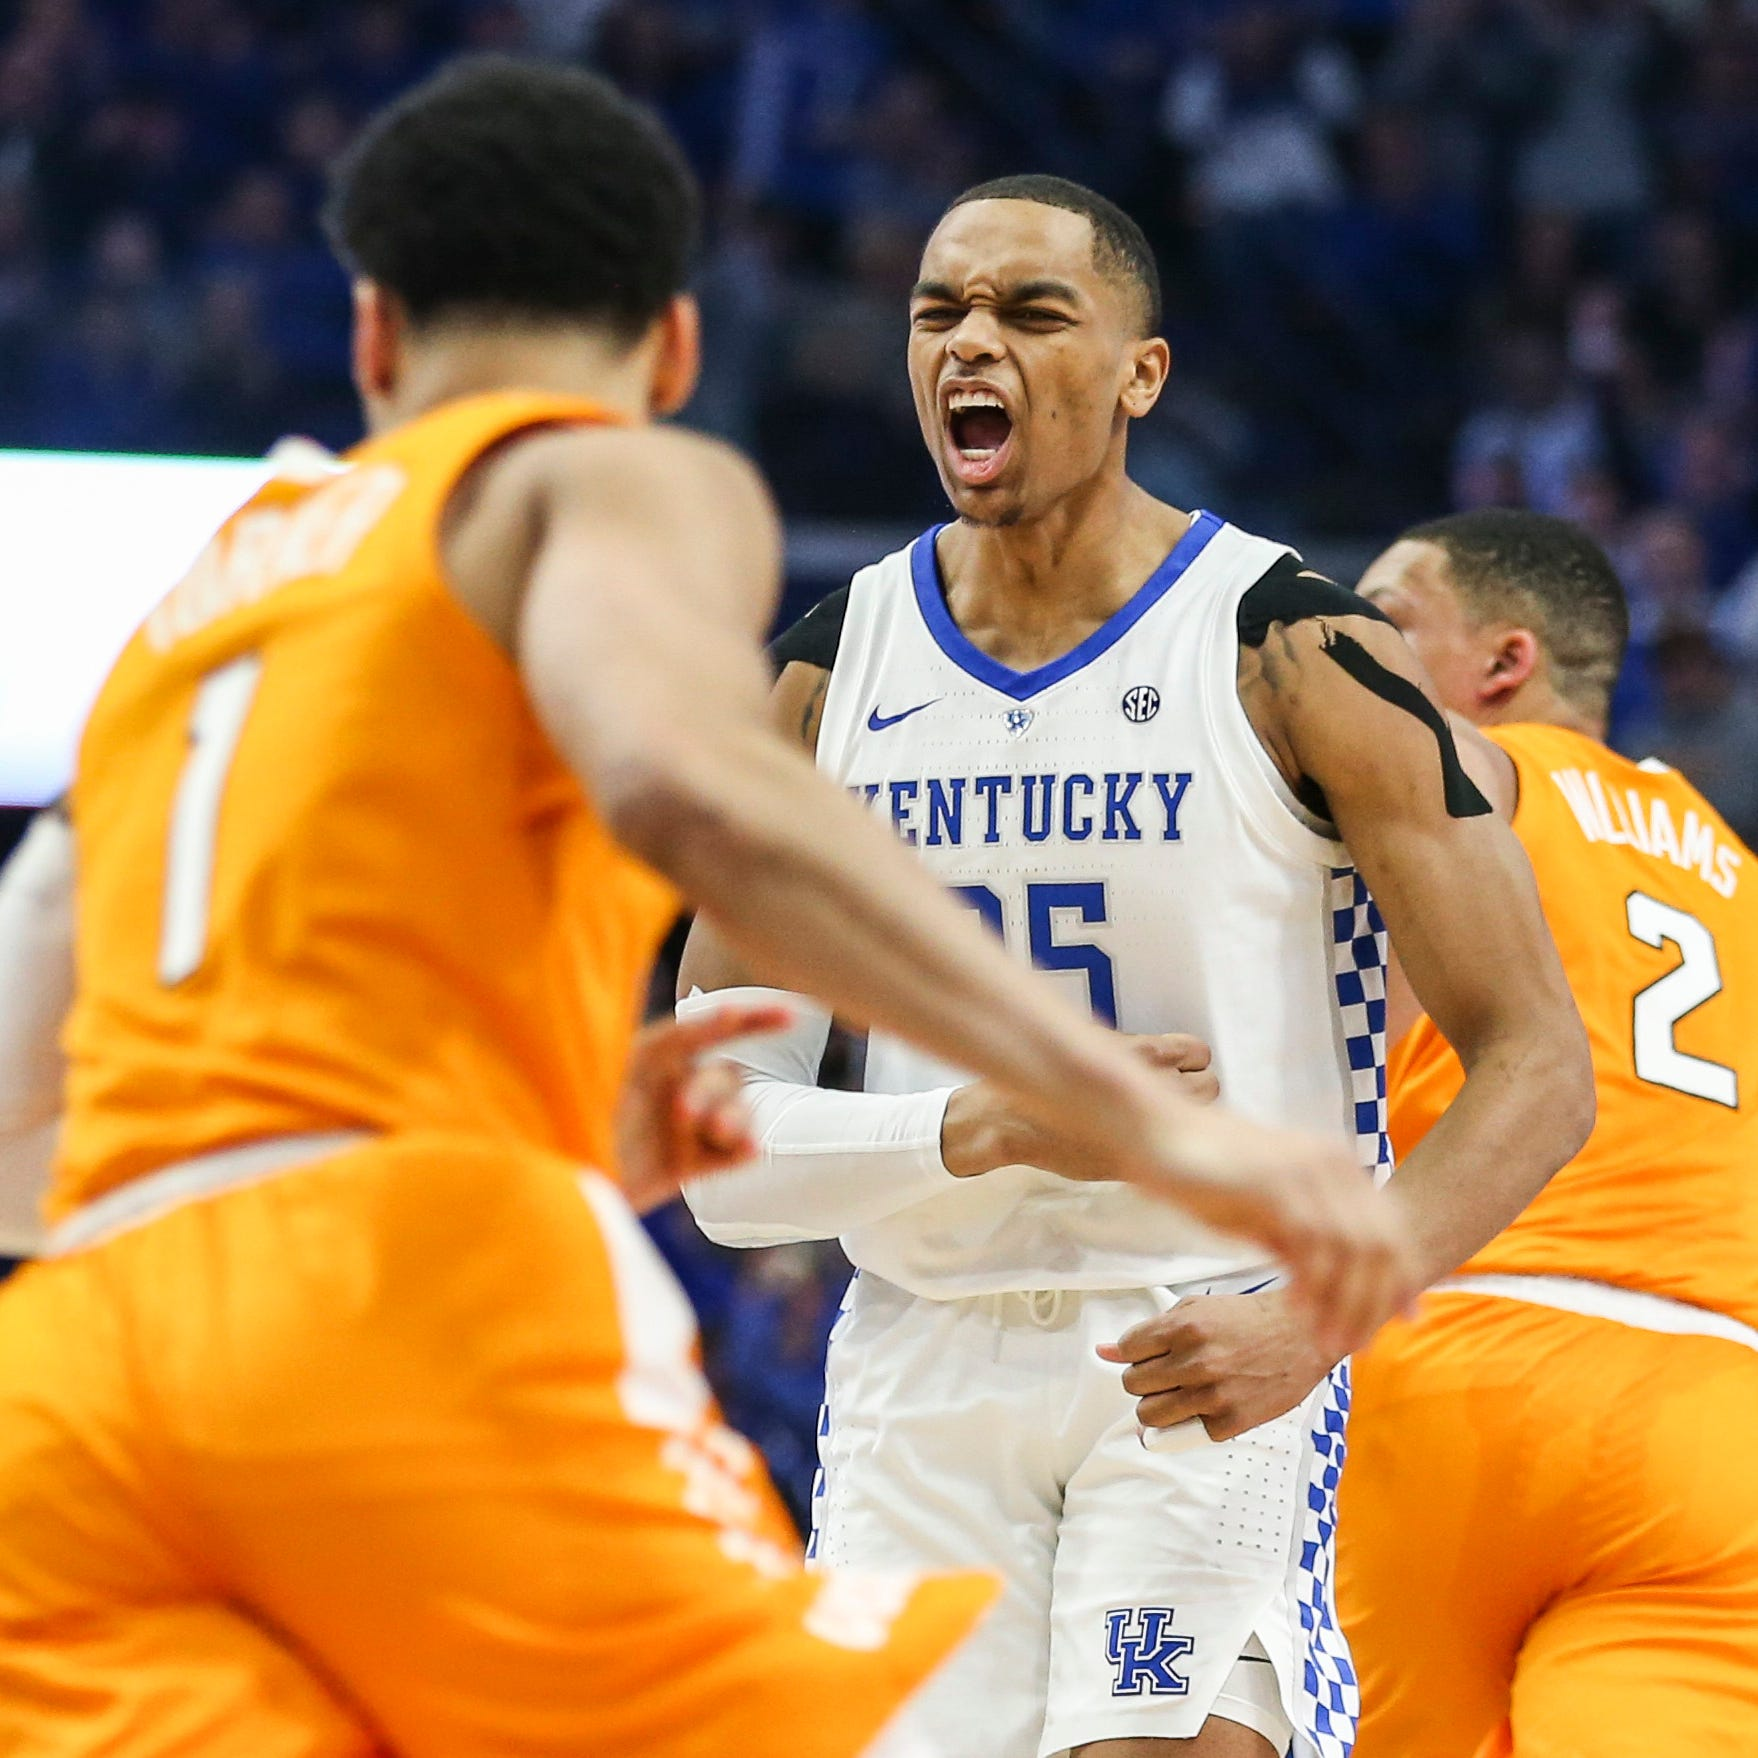 Kentucky basketball destroys UT Vols' night, but not their ultimate pursuit